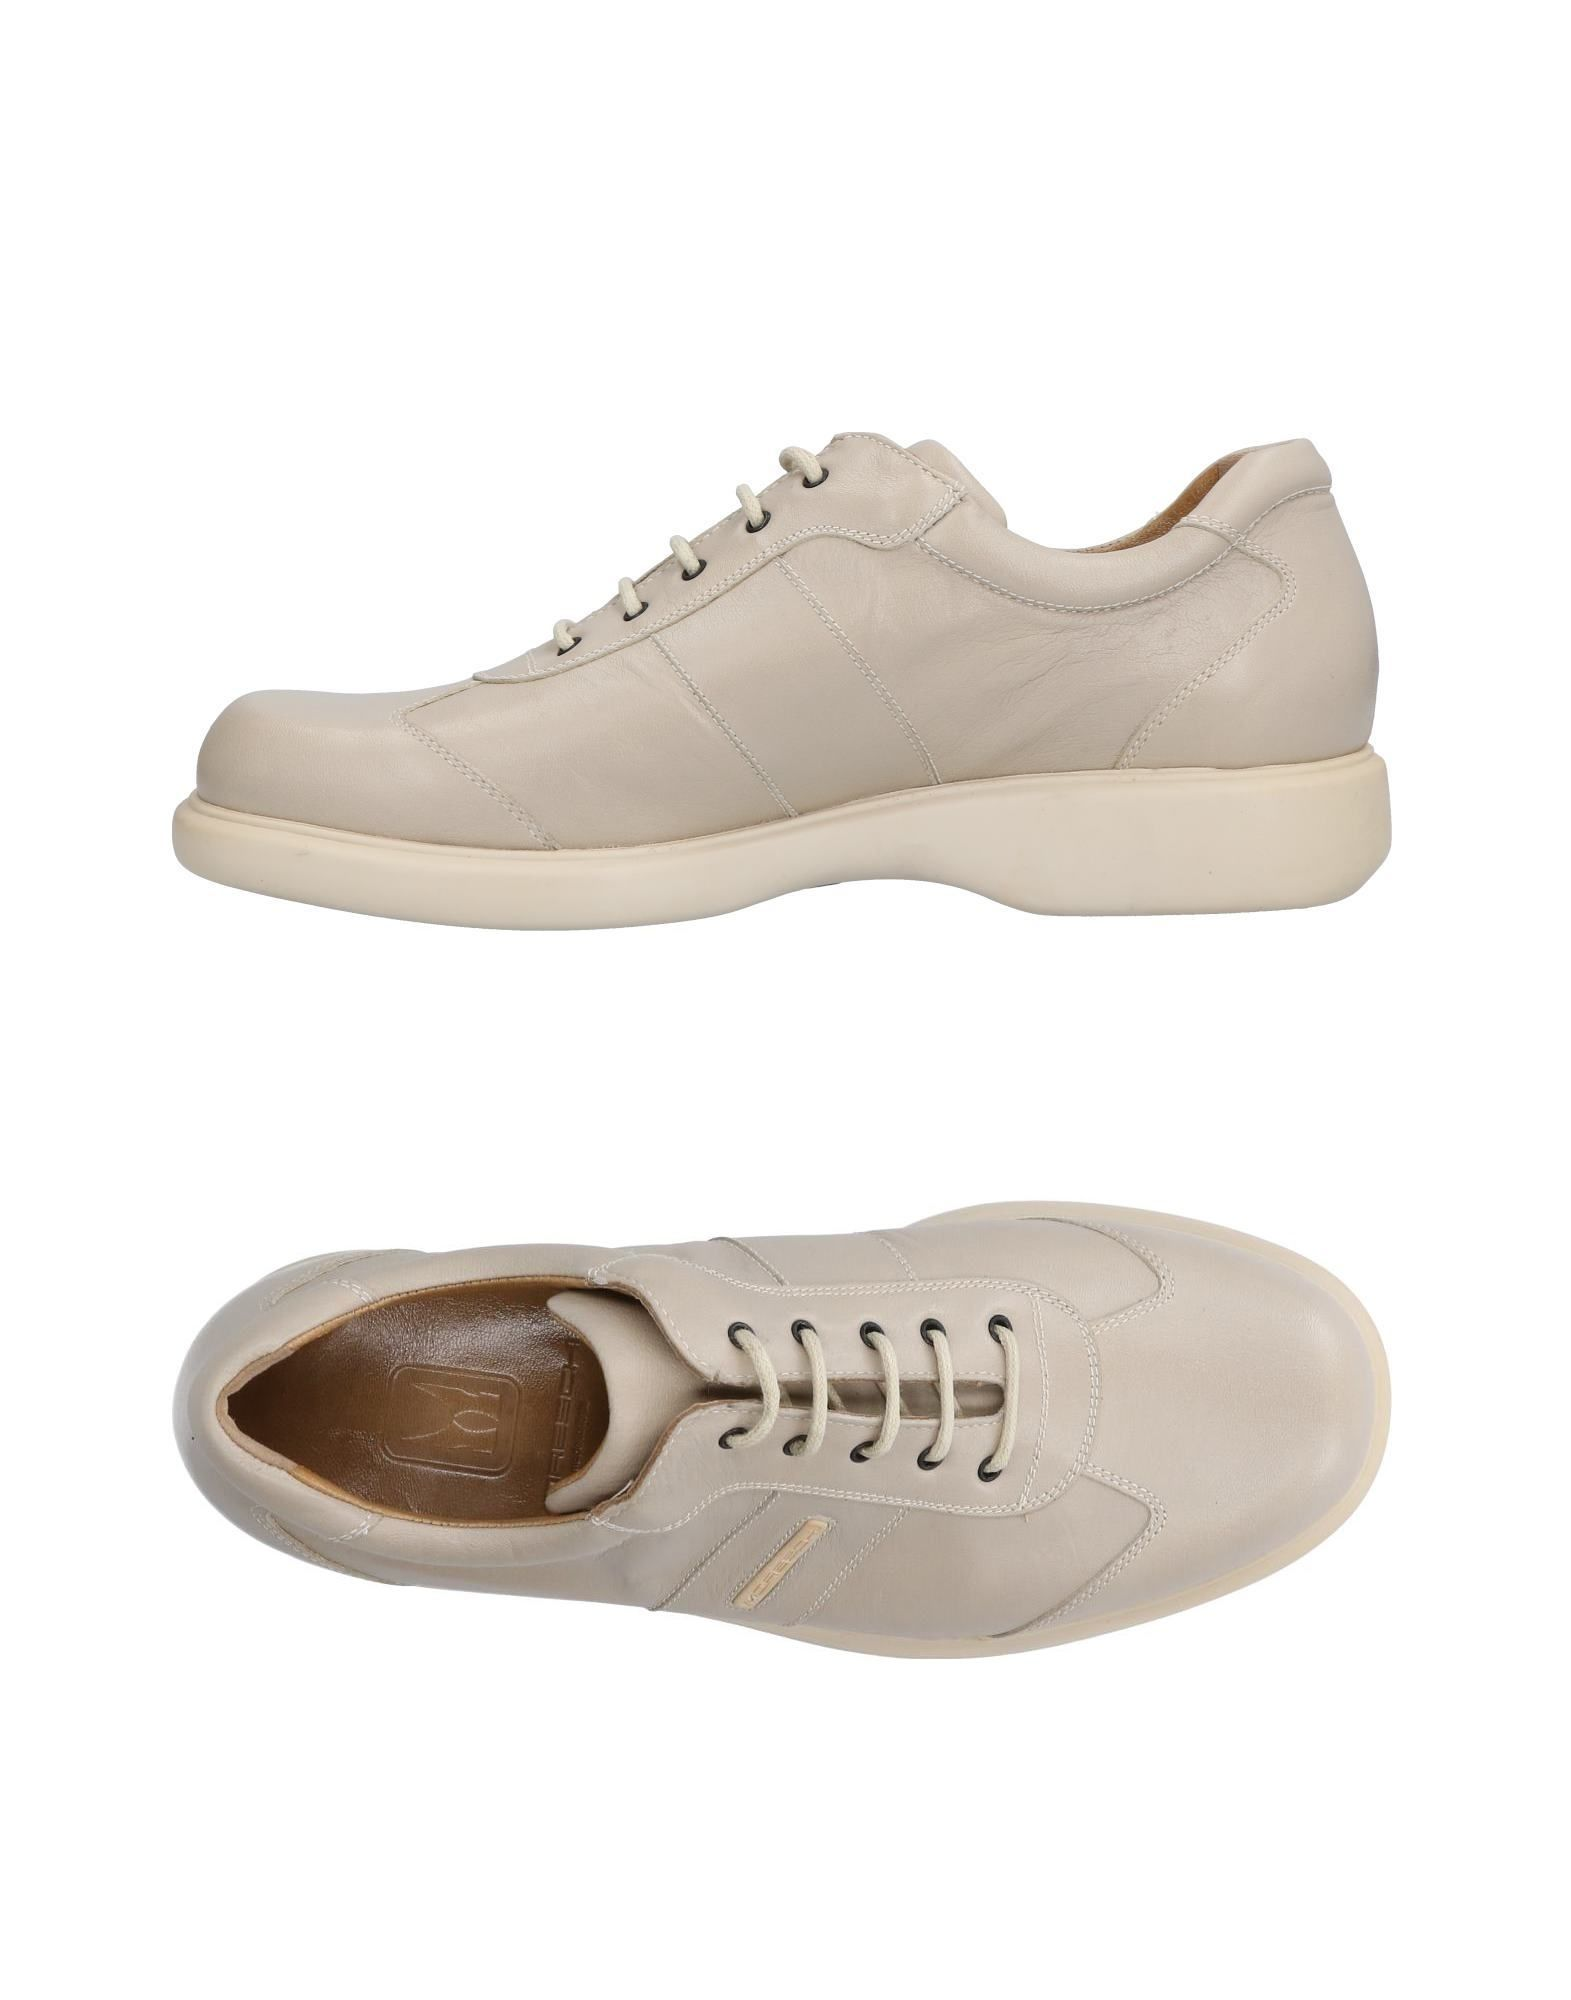 Moreschi Sneakers United - Men Moreschi Sneakers online on  United Sneakers Kingdom - 11489596KM 00636f